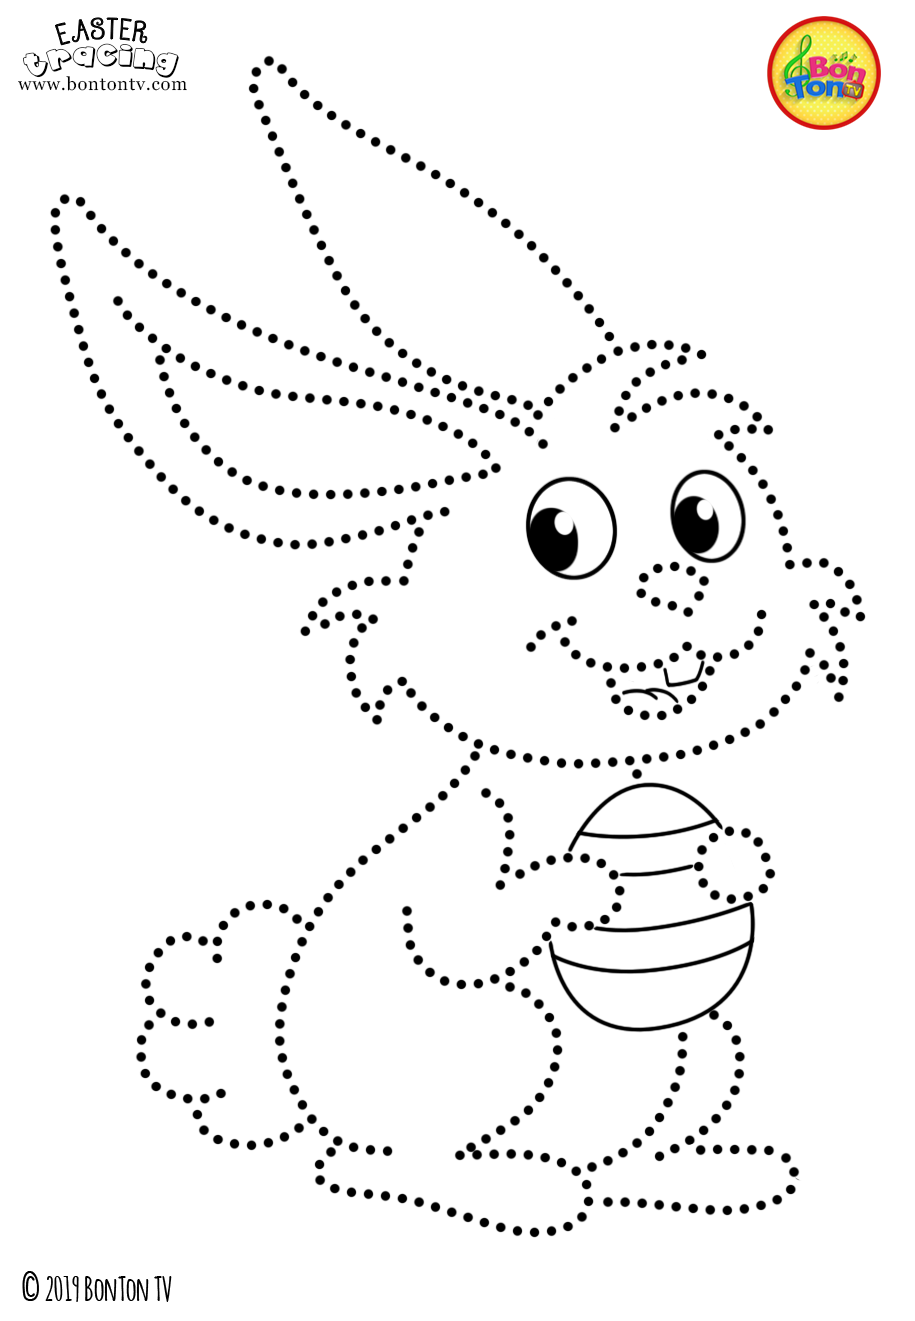 Easter Tracing And Coloring Pages For Kids Free Preschool Printables And Worksheets Fine Motor Skills Practice E In 2020 Kolorowanki Wzory Rekodzielo Na Wielkanoc